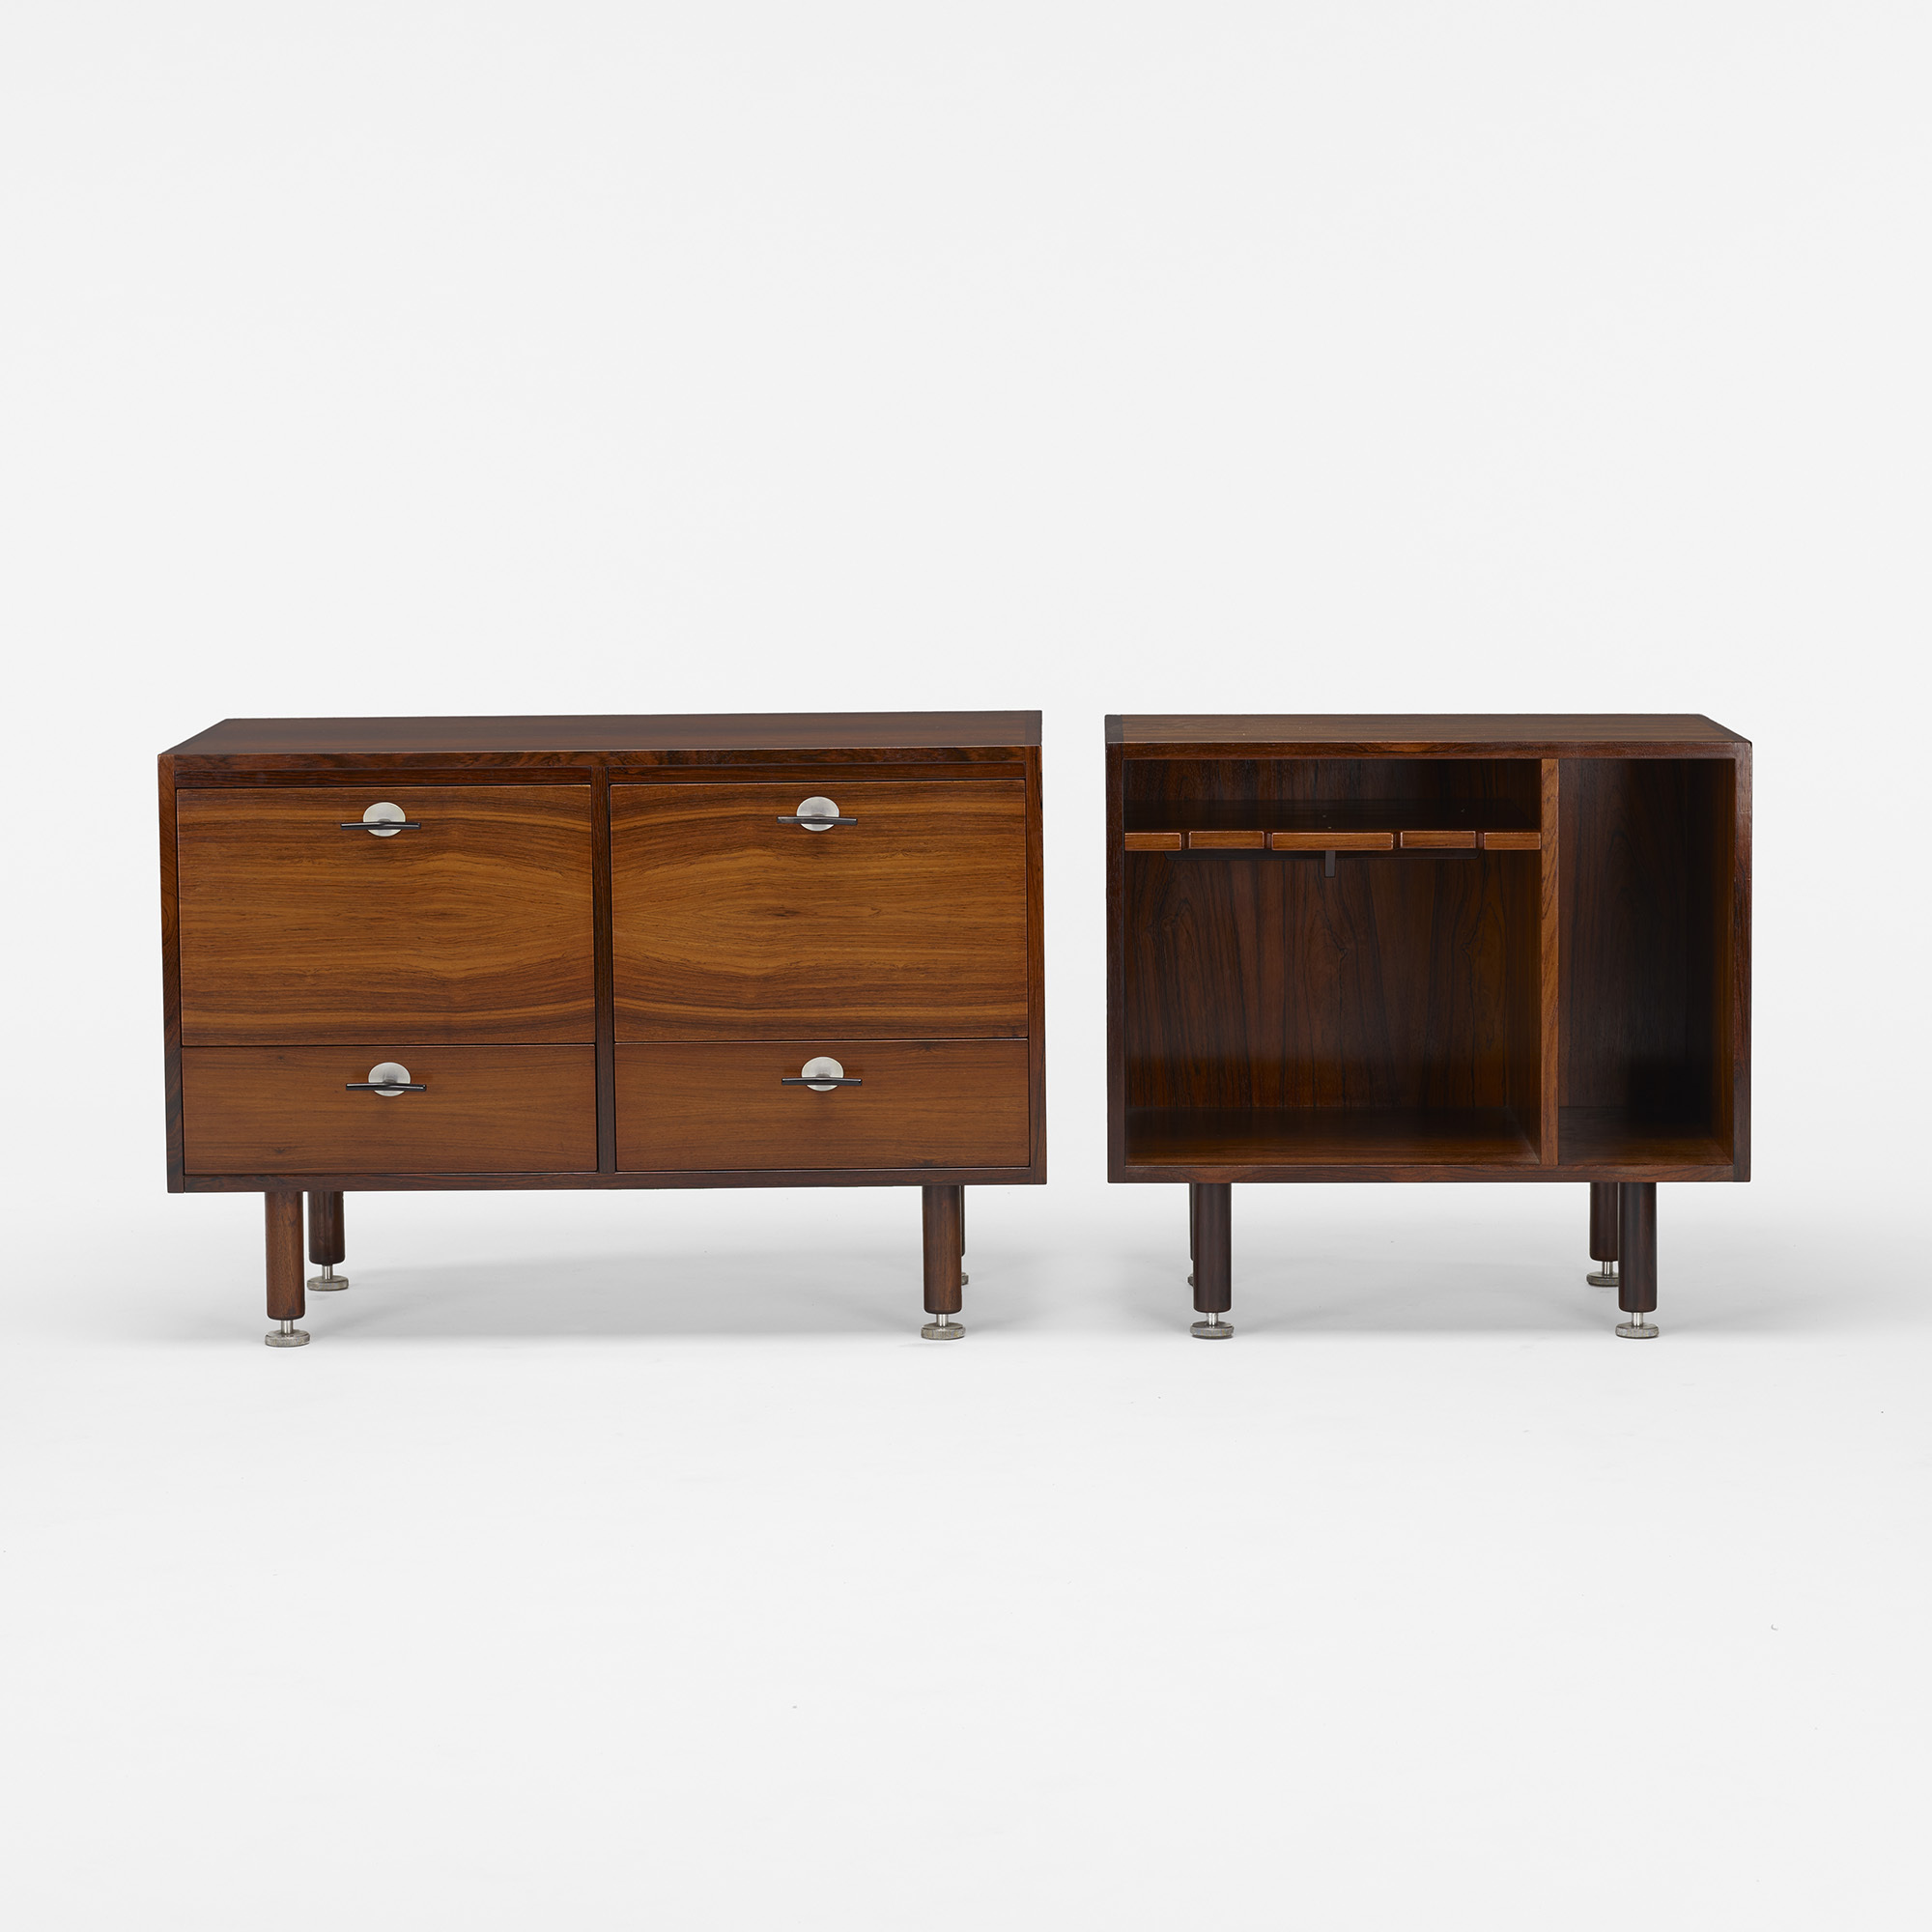 jens risom cabinets pair wright now shop modern design online